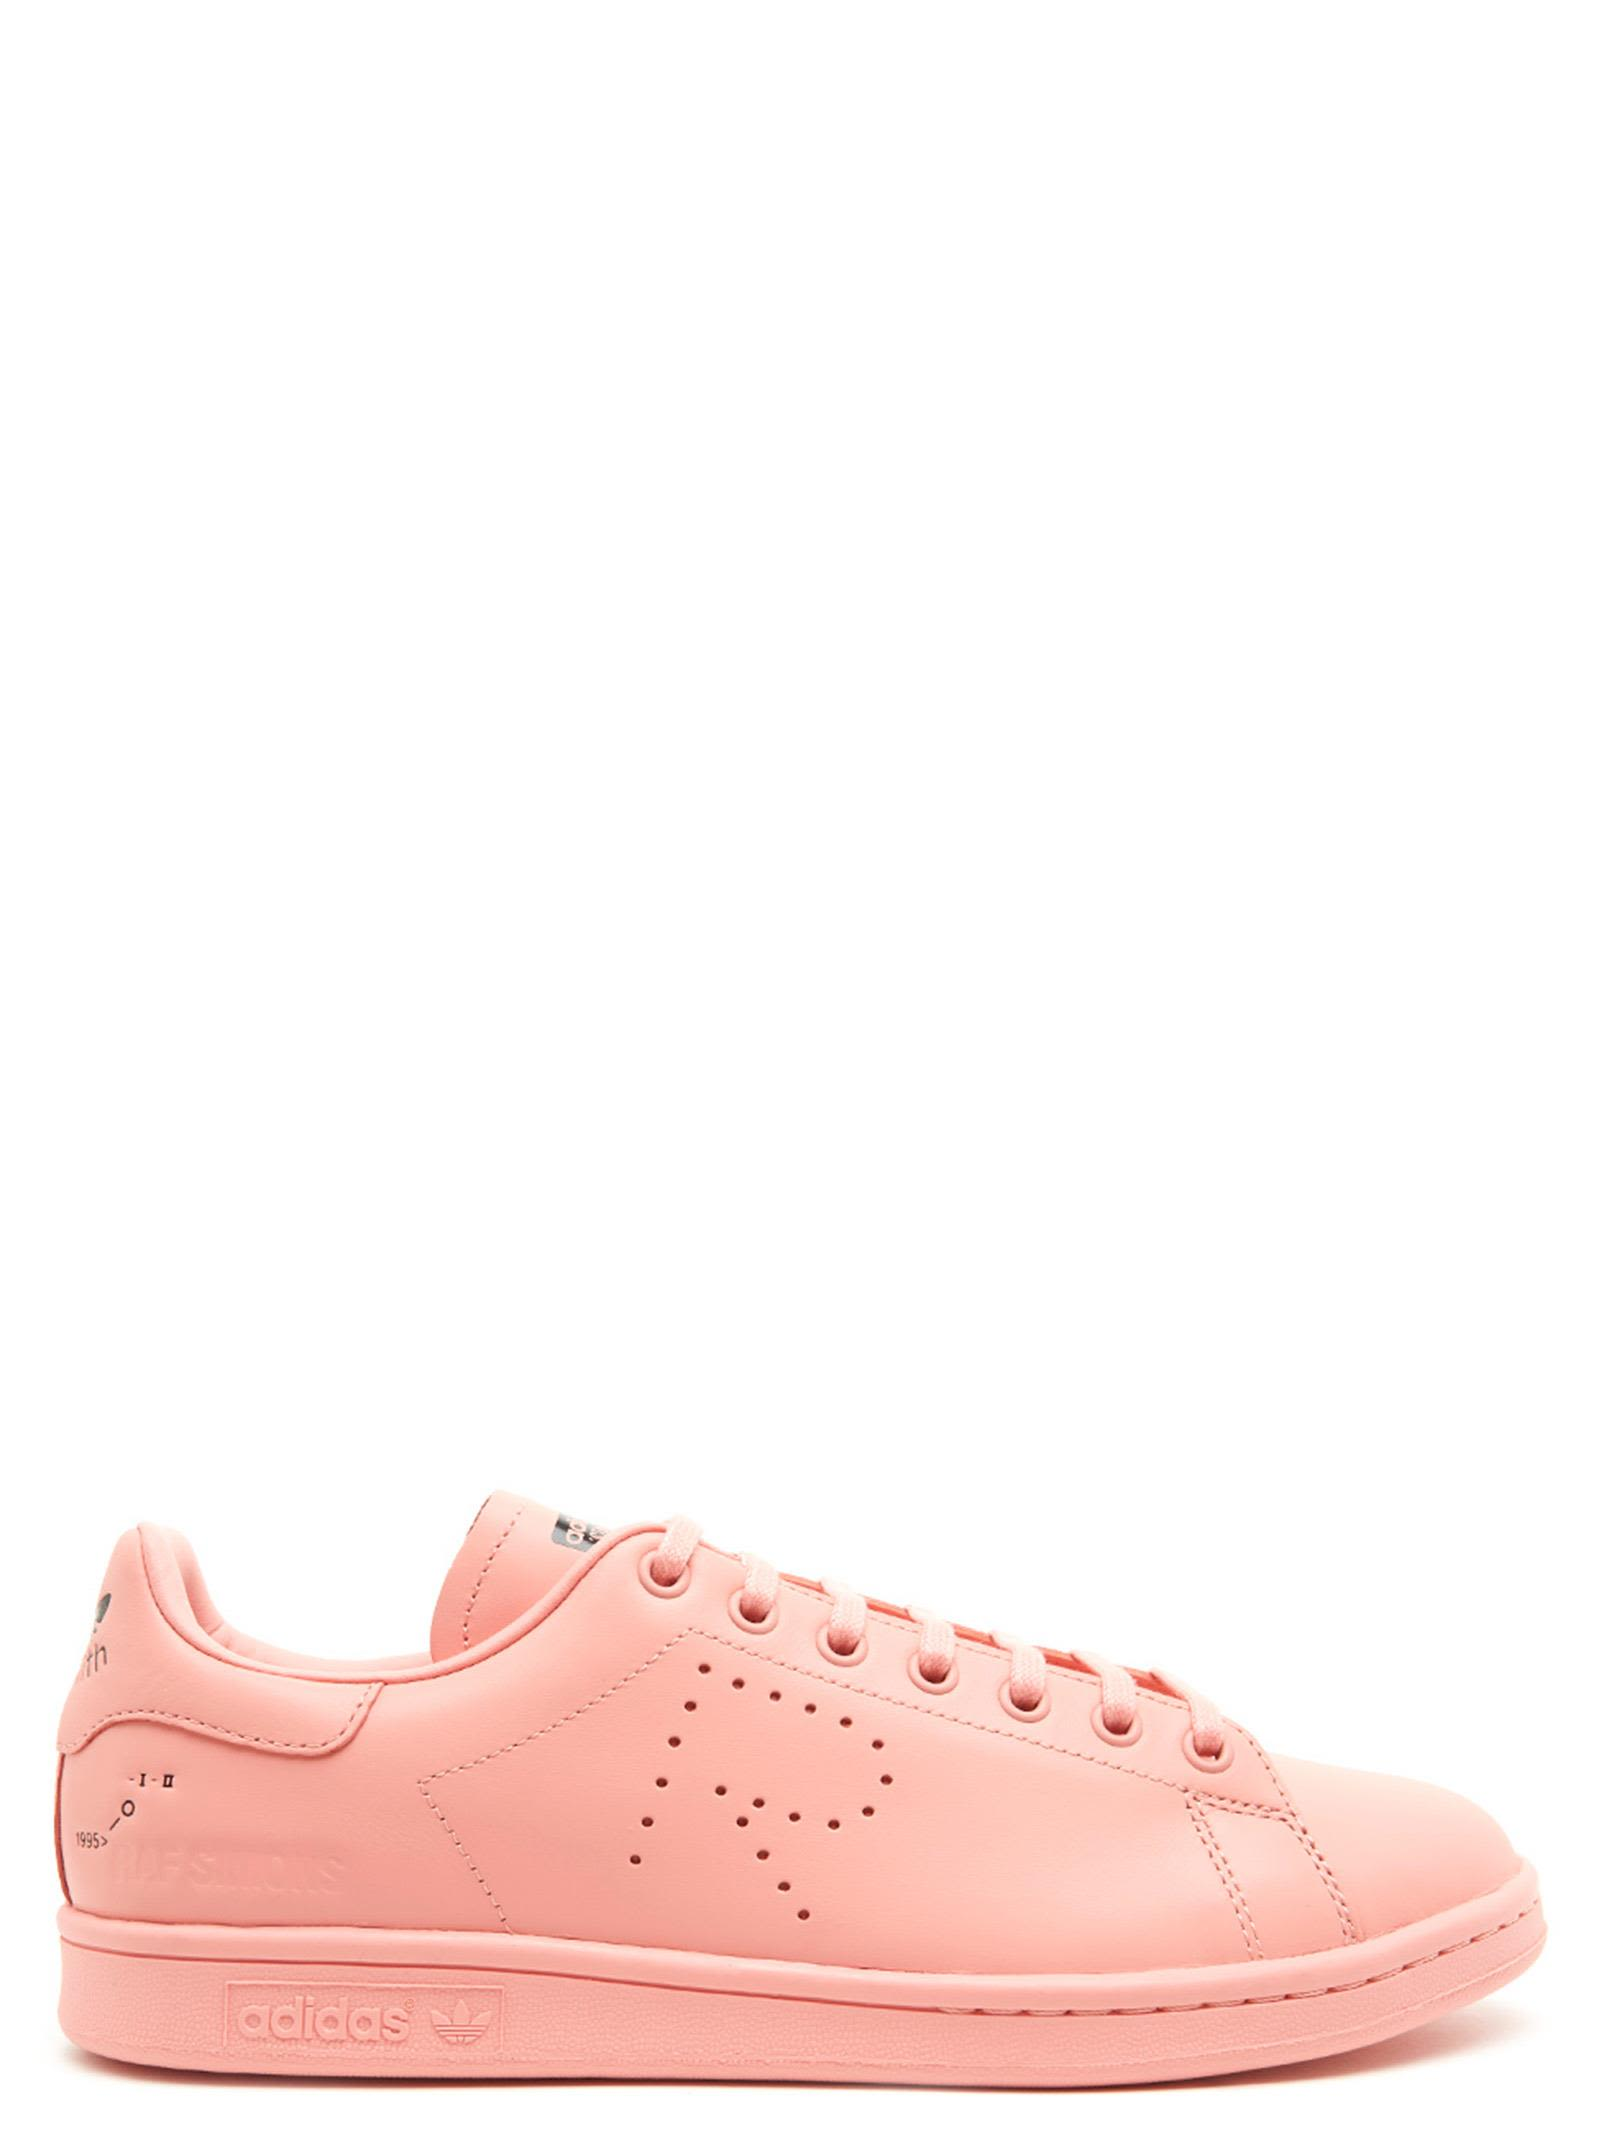 Adidas By Raf Simons 'stan Smith' Shoes